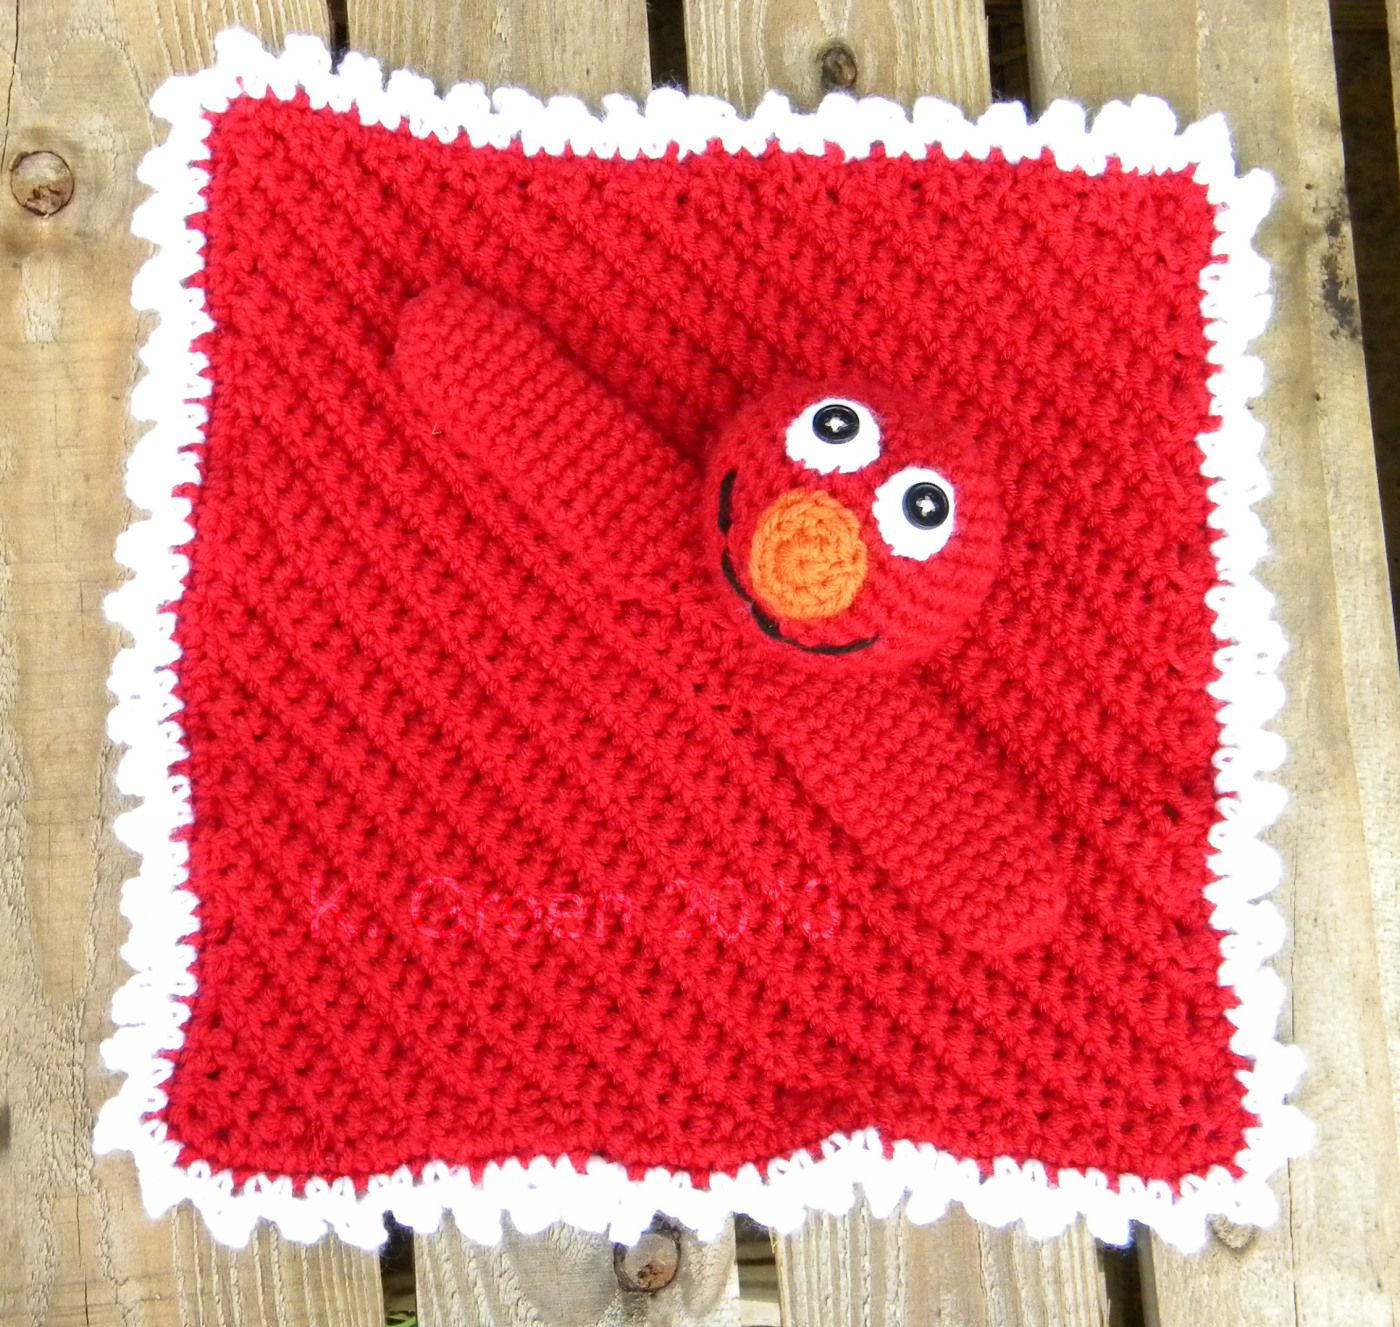 Little red monster cuddle blankie pattern elmo crochet baby and free crochet baby pattern elmo blanket bankloansurffo Gallery